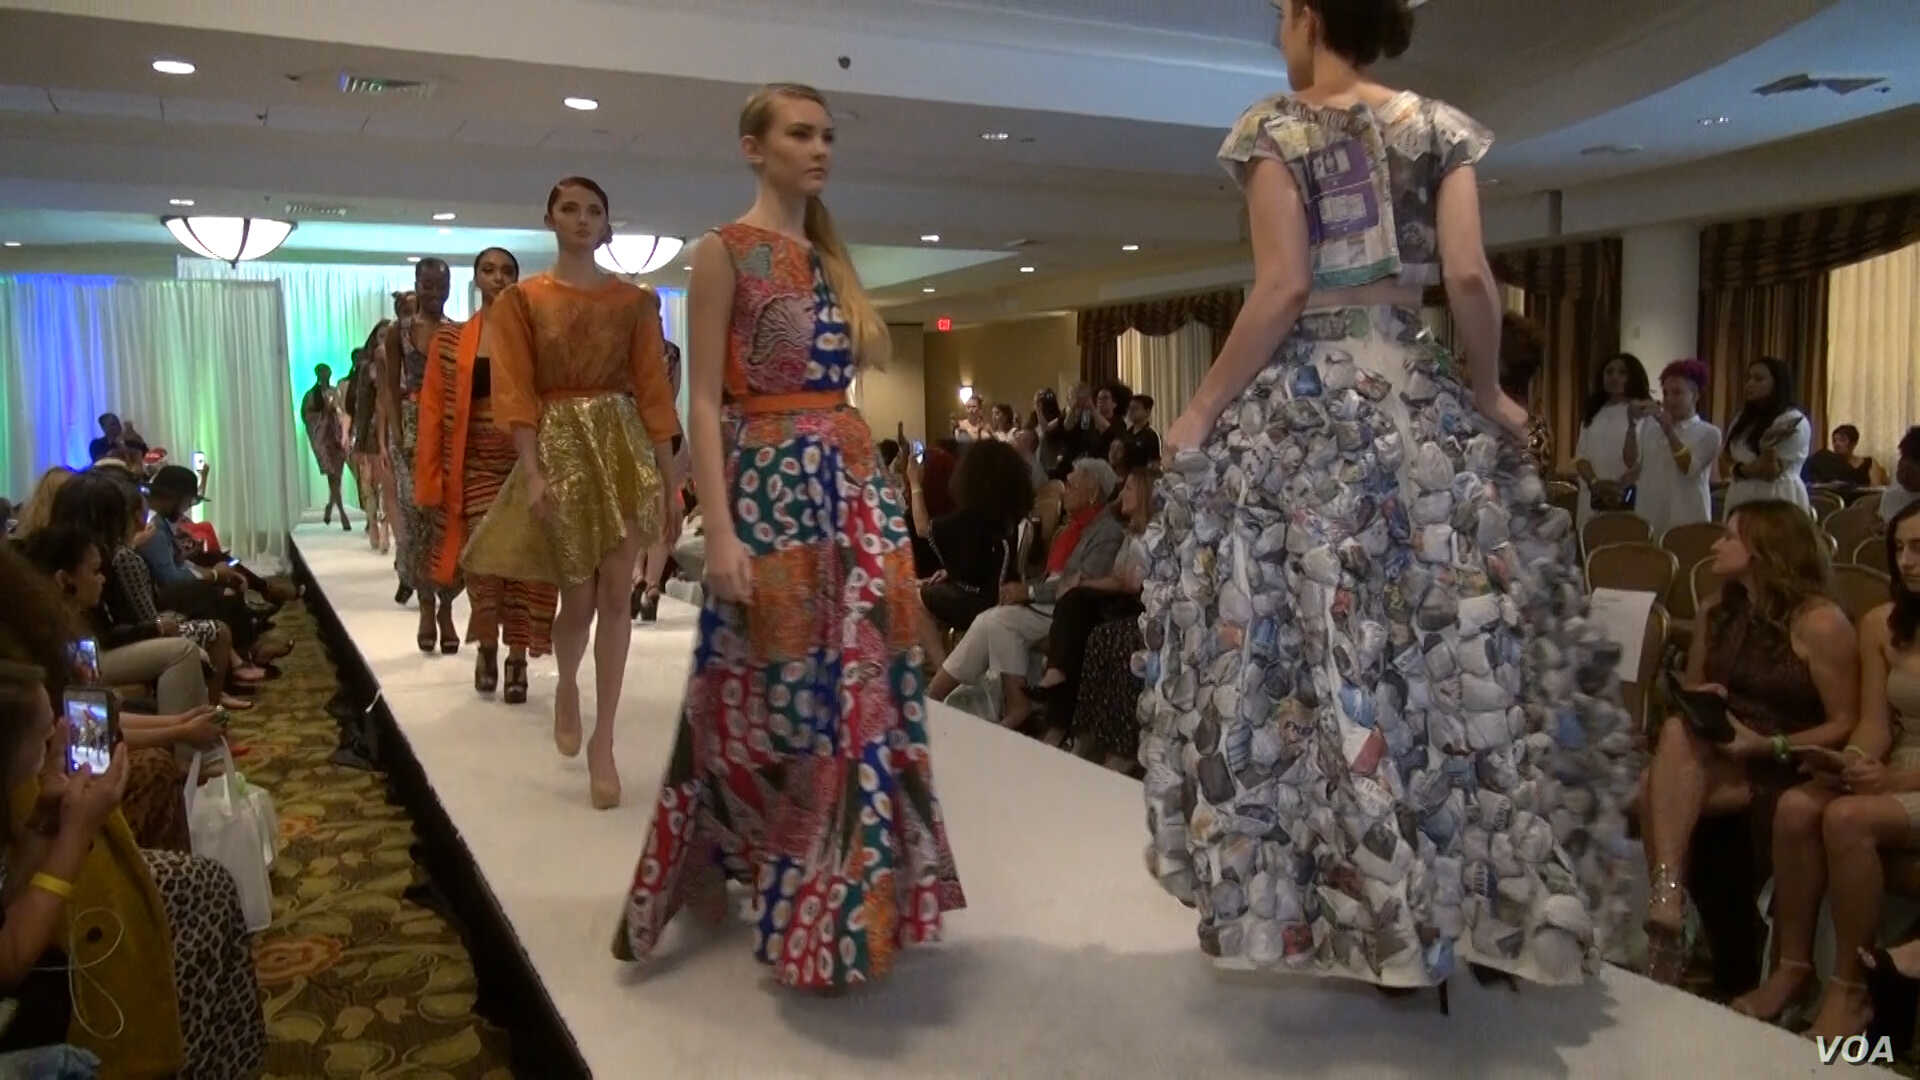 Models wearing fashions designed by emerging and international designers display their work at a DC Fashion Week event. (Photo: J. Soh / VOA)